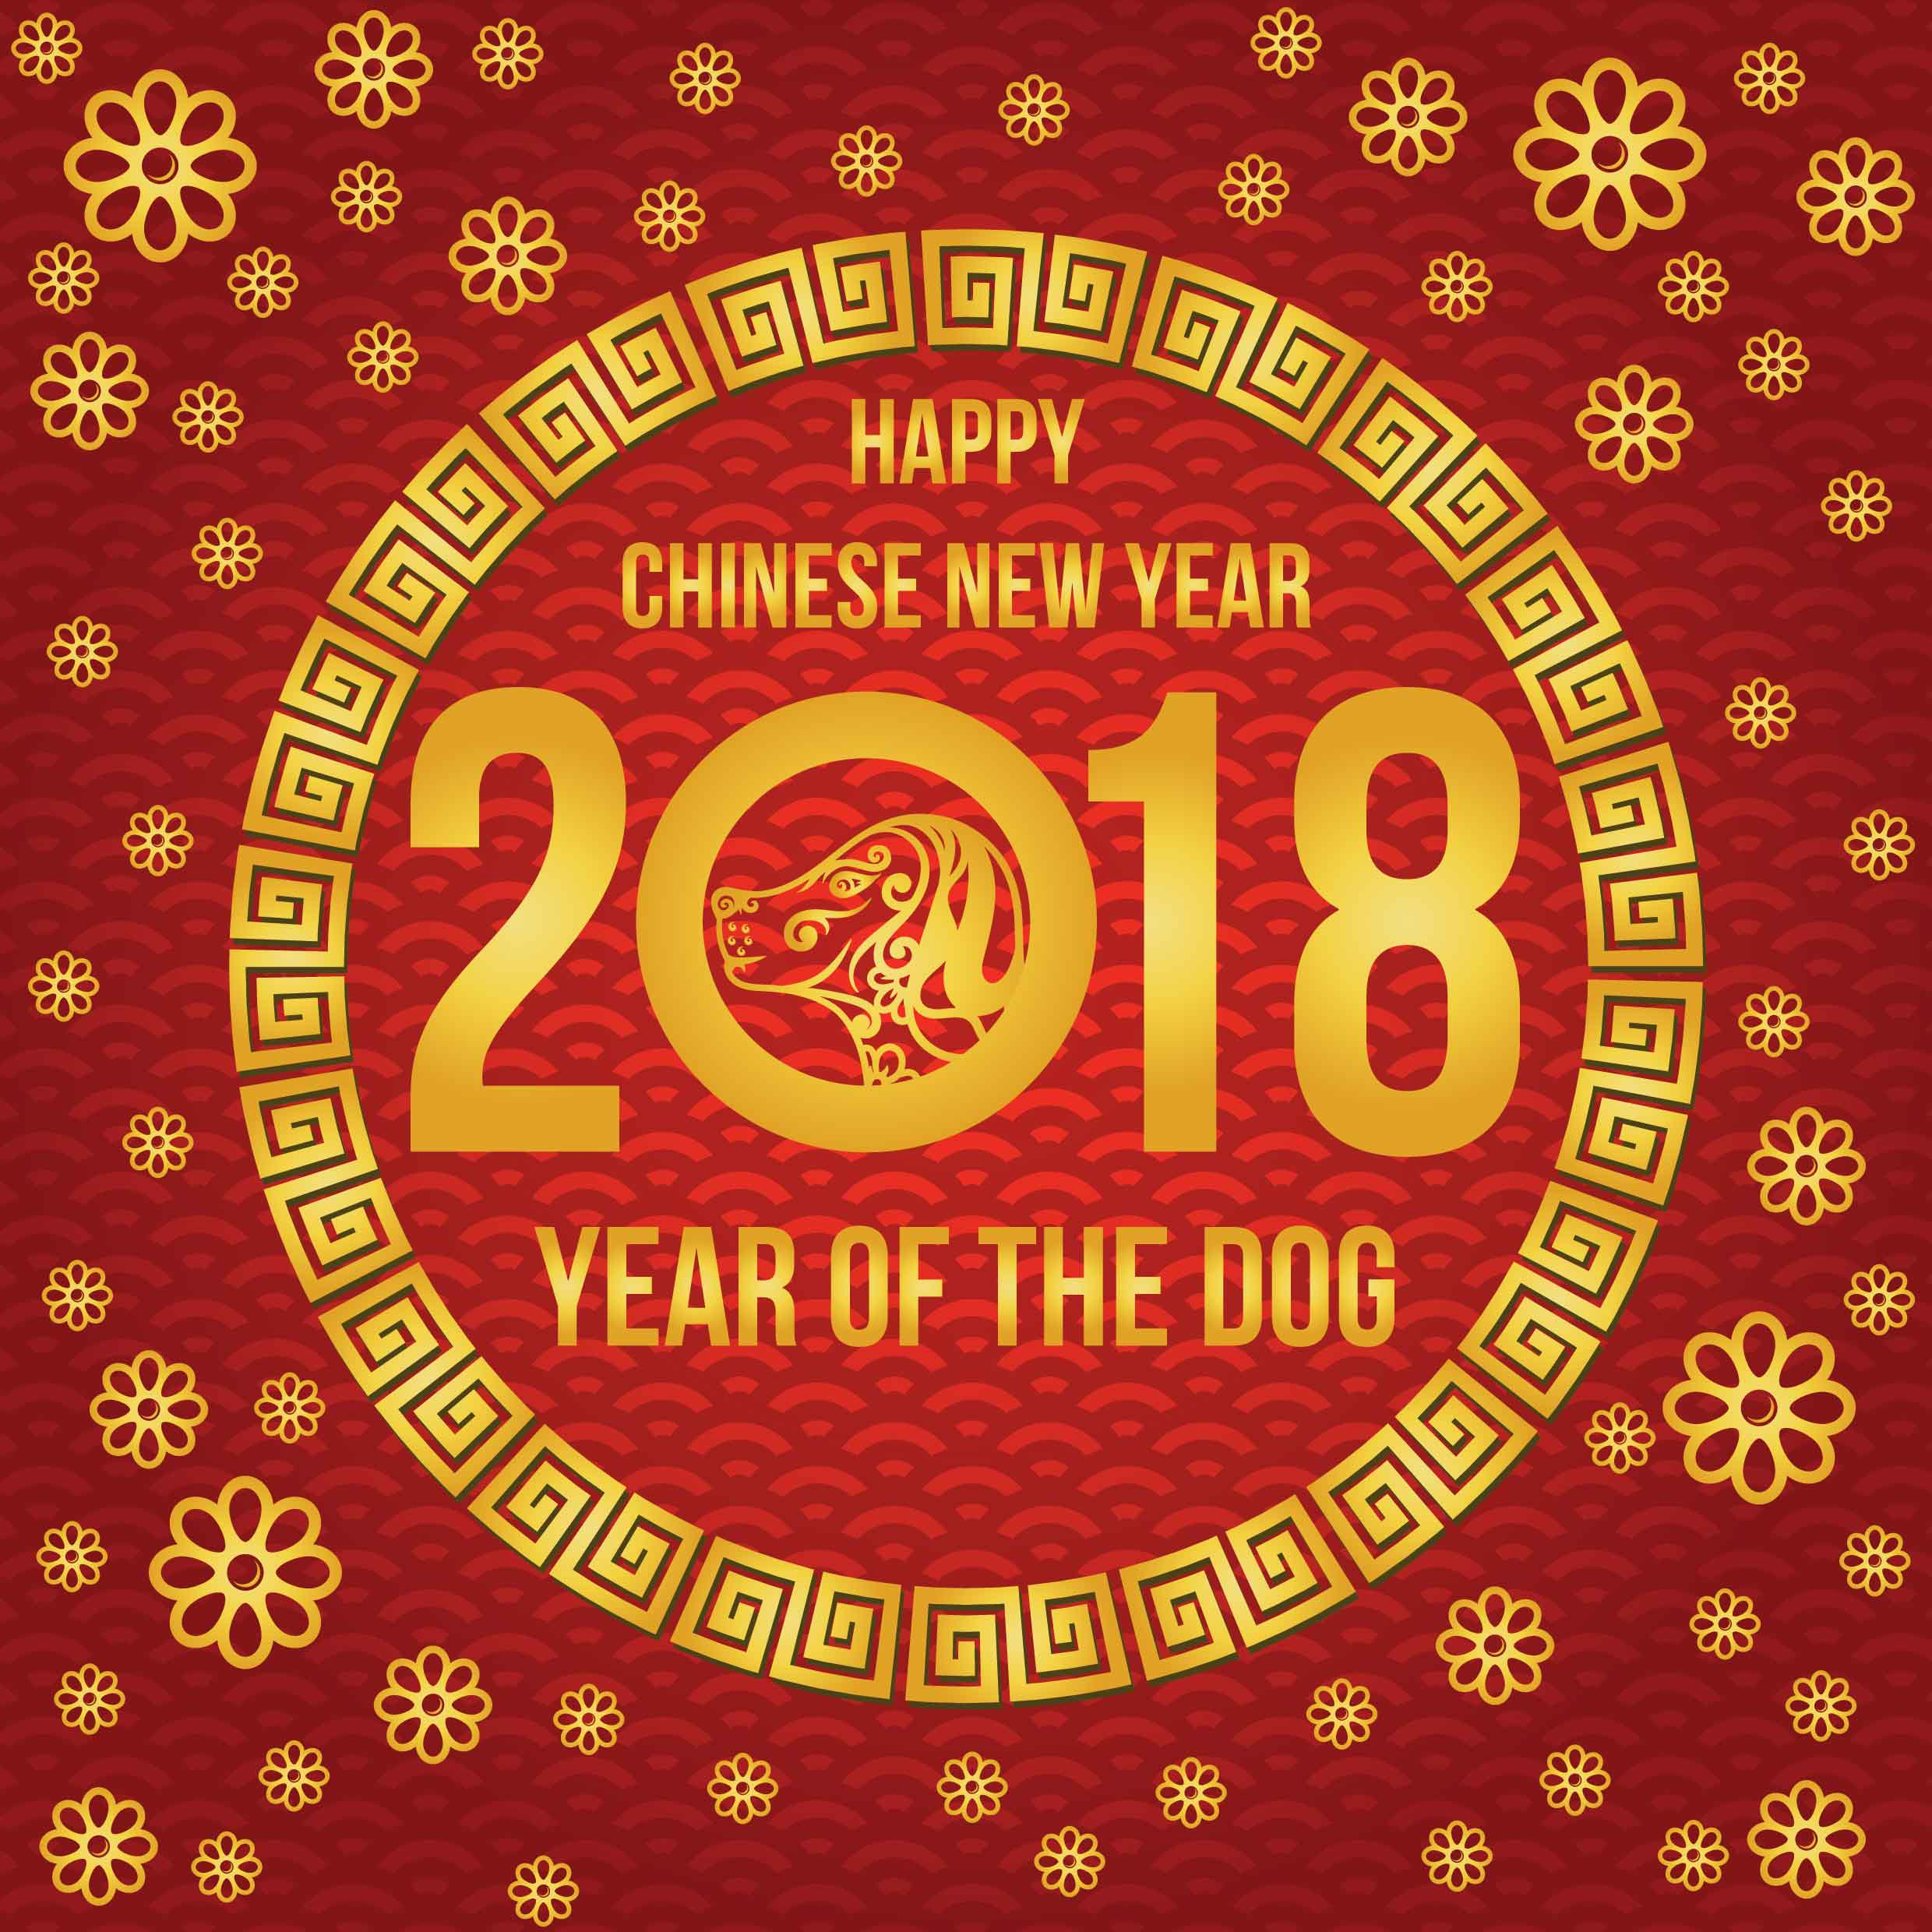 chinese new year of the dog vector download free vector art stock graphics images. Black Bedroom Furniture Sets. Home Design Ideas